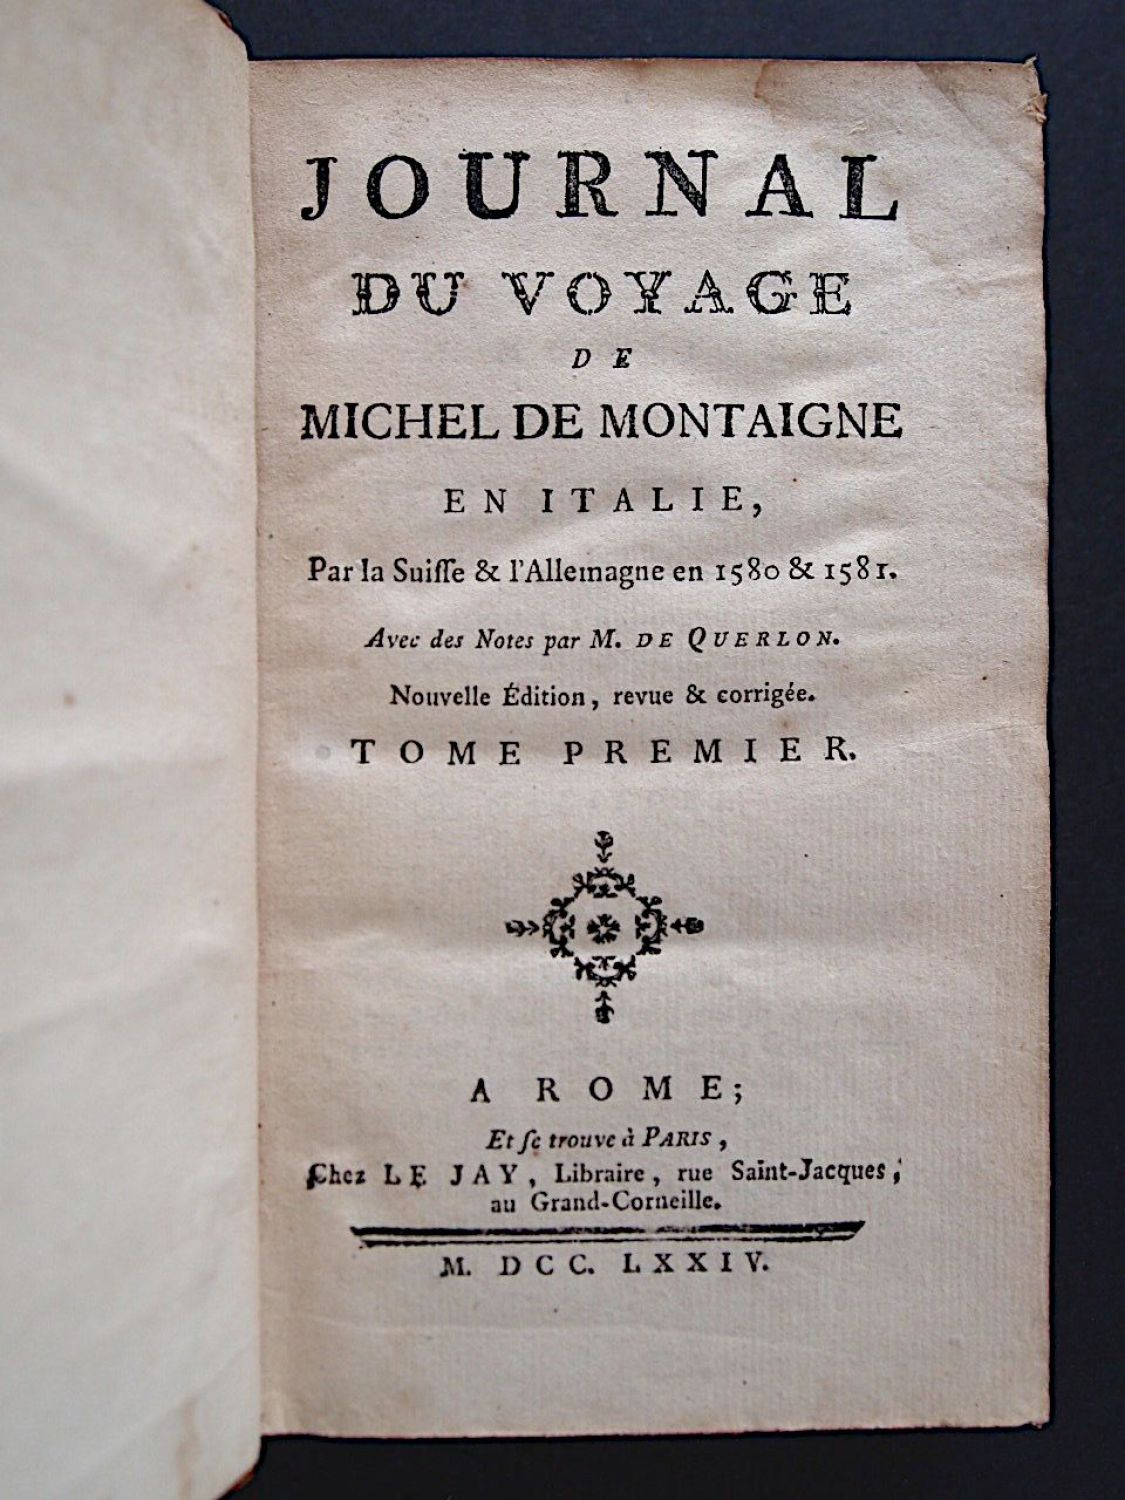 montaigne journal du voyage de michel de montaigne en italie par la suisse l 39 allemagne en. Black Bedroom Furniture Sets. Home Design Ideas